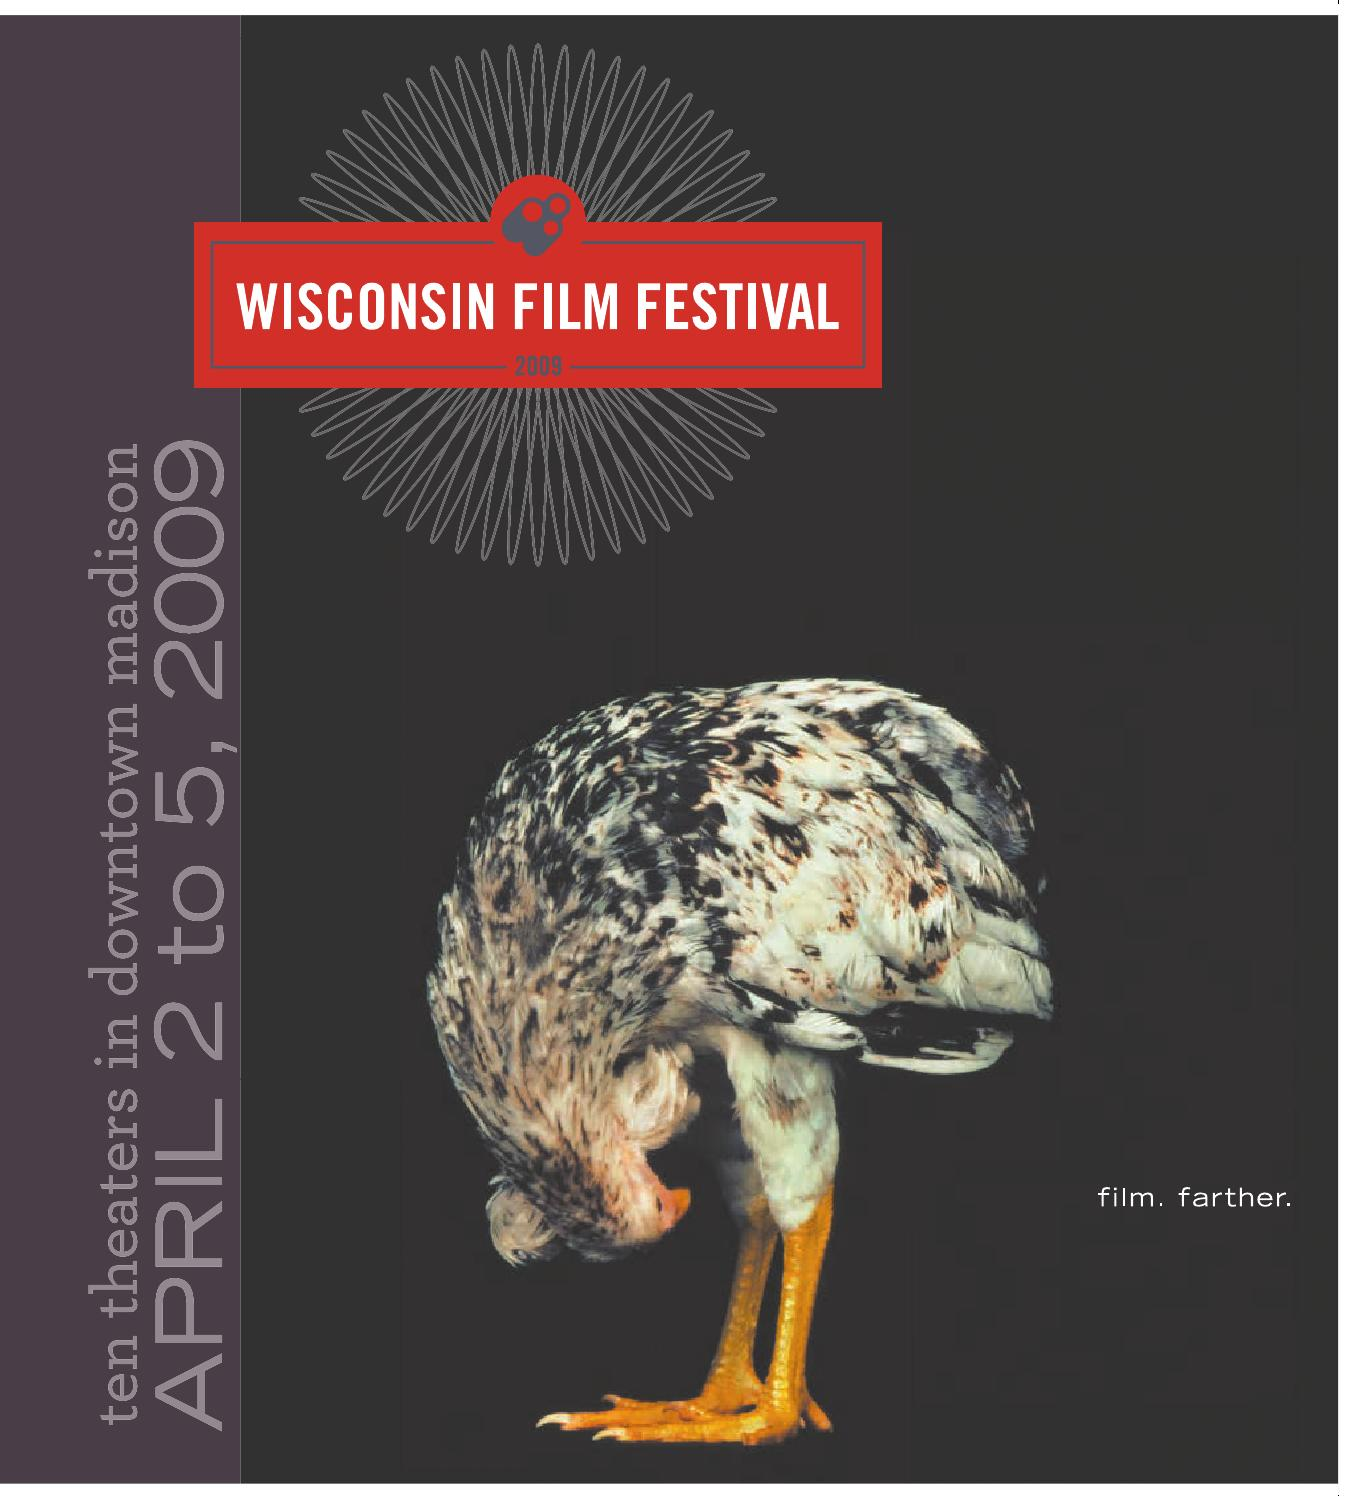 2009 Wisconsin Film Festival Film Guide by Wisconsin Film Festival - issuu